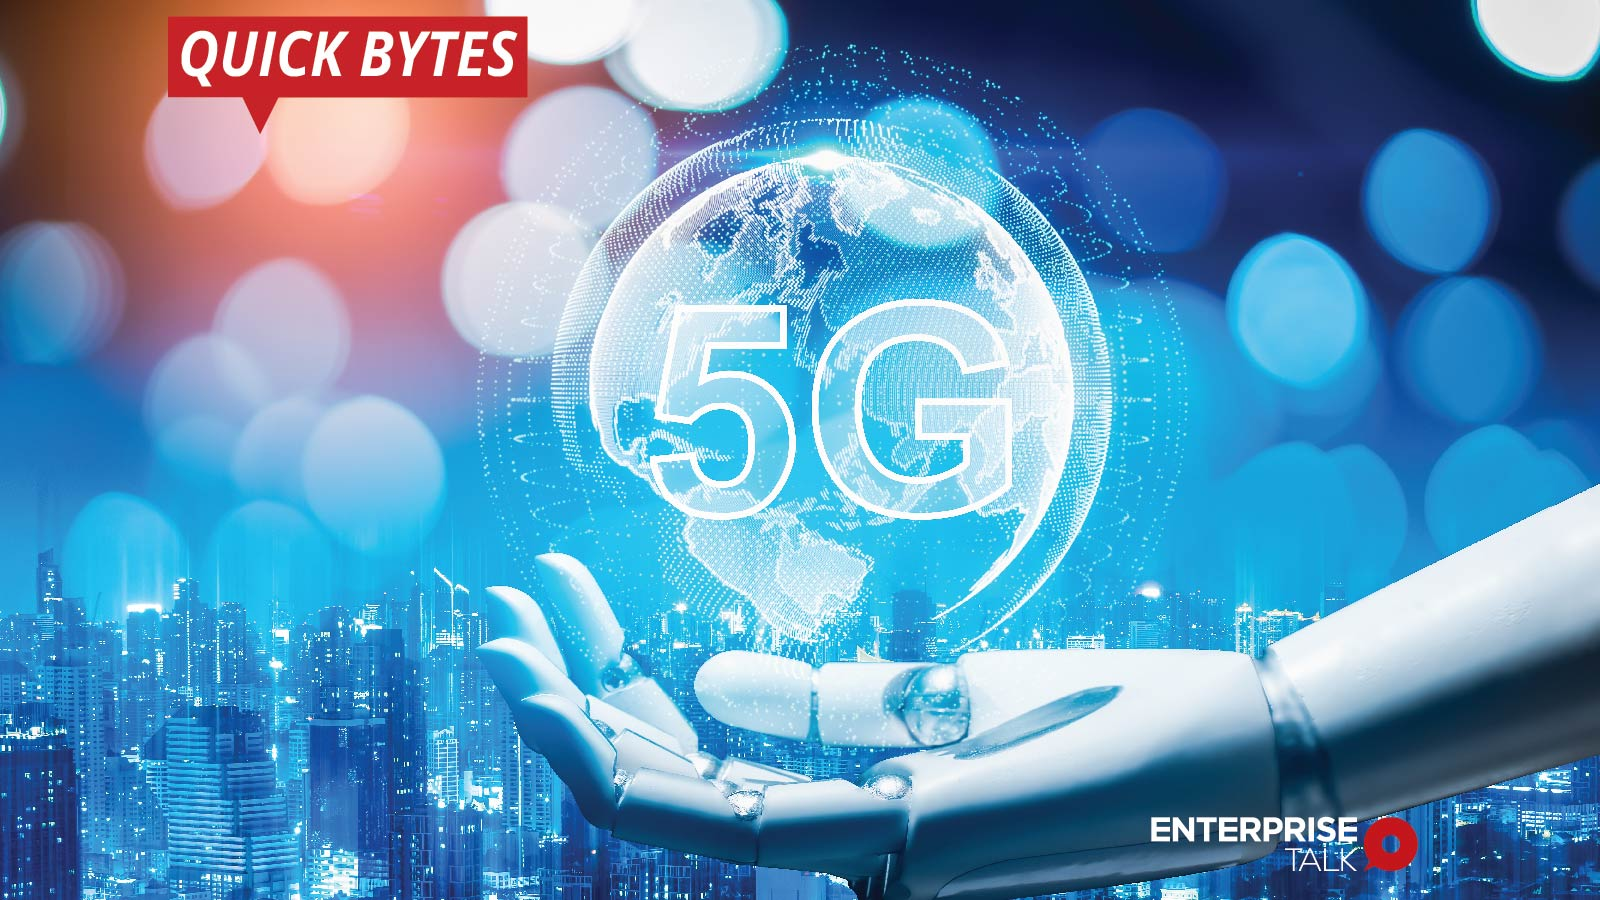 Logical Clocks with European Initiative Plans to Bring AI to 5G